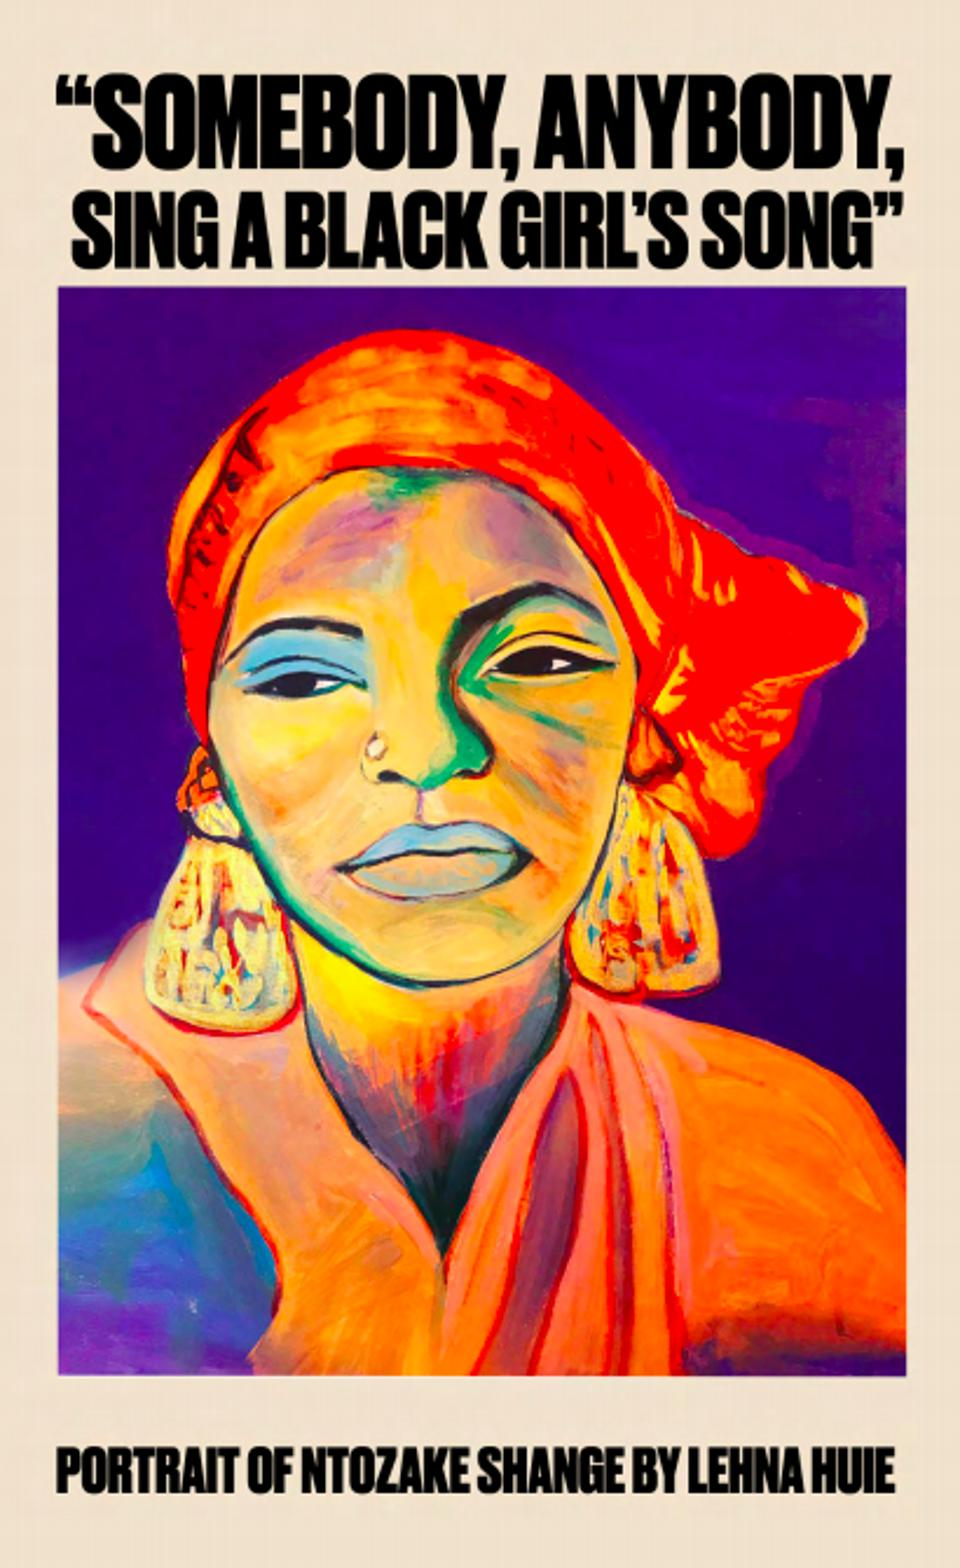 An uplifting quote by and a portrait of Ntozake Shange.